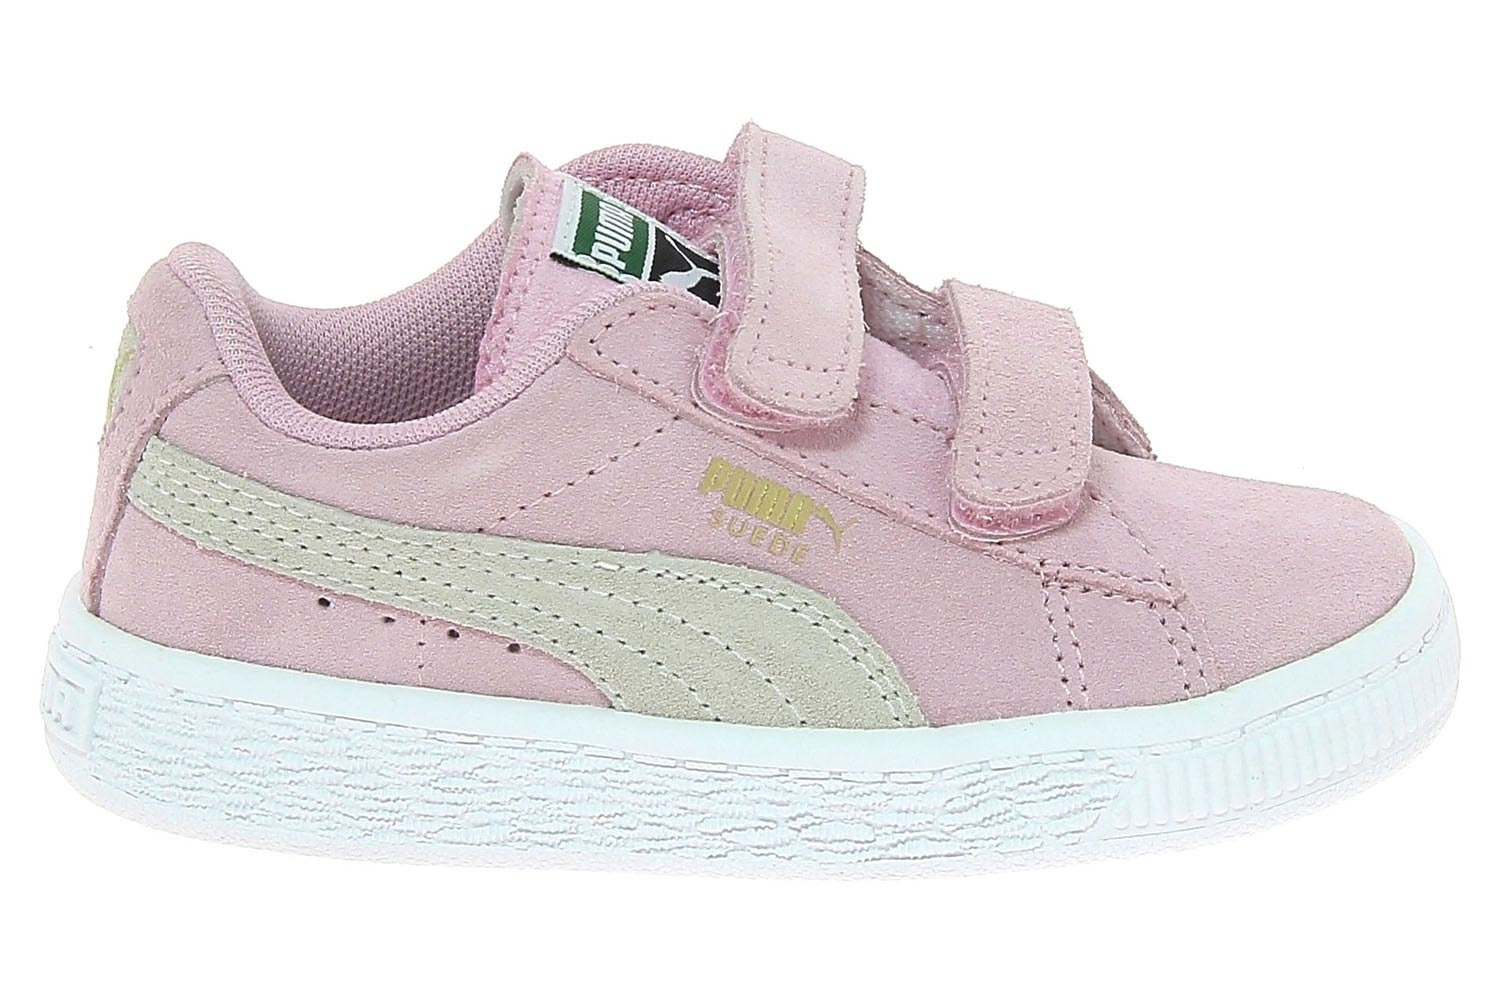 Chaussures de skate puma rose suede 2 straps inf chaussures